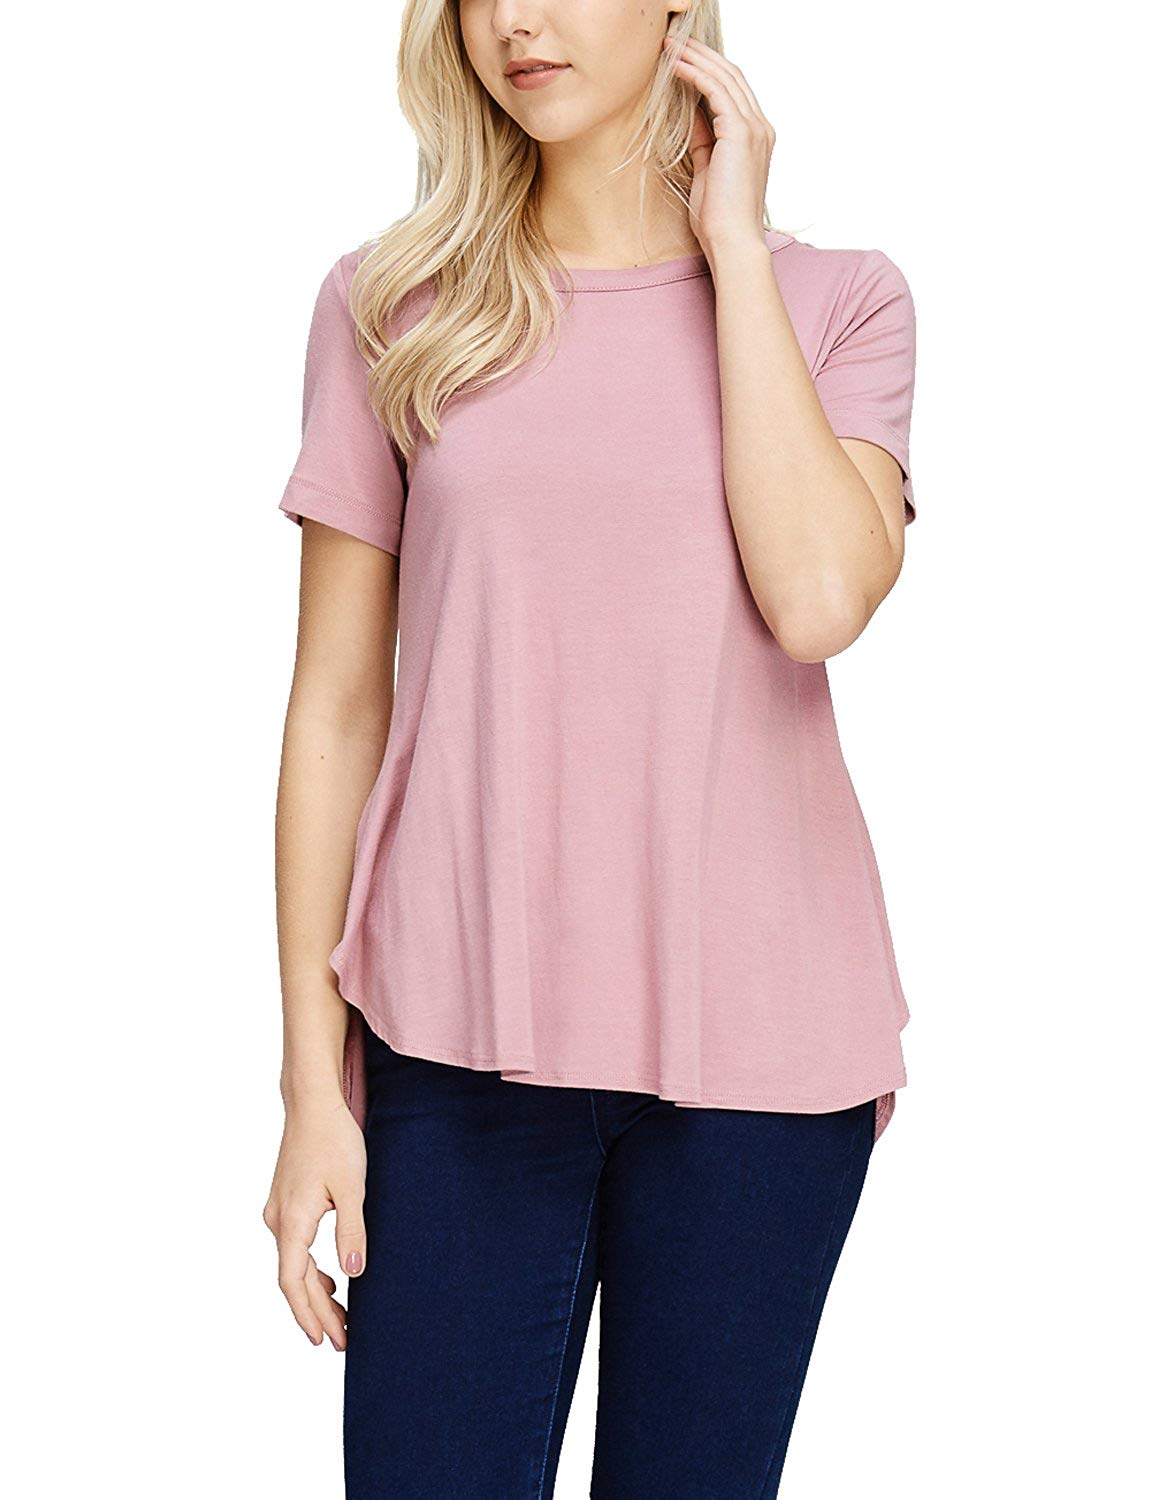 TAM WARE Womens Stylish Short Sleeve French Terry Tunic Top (Made in USA)